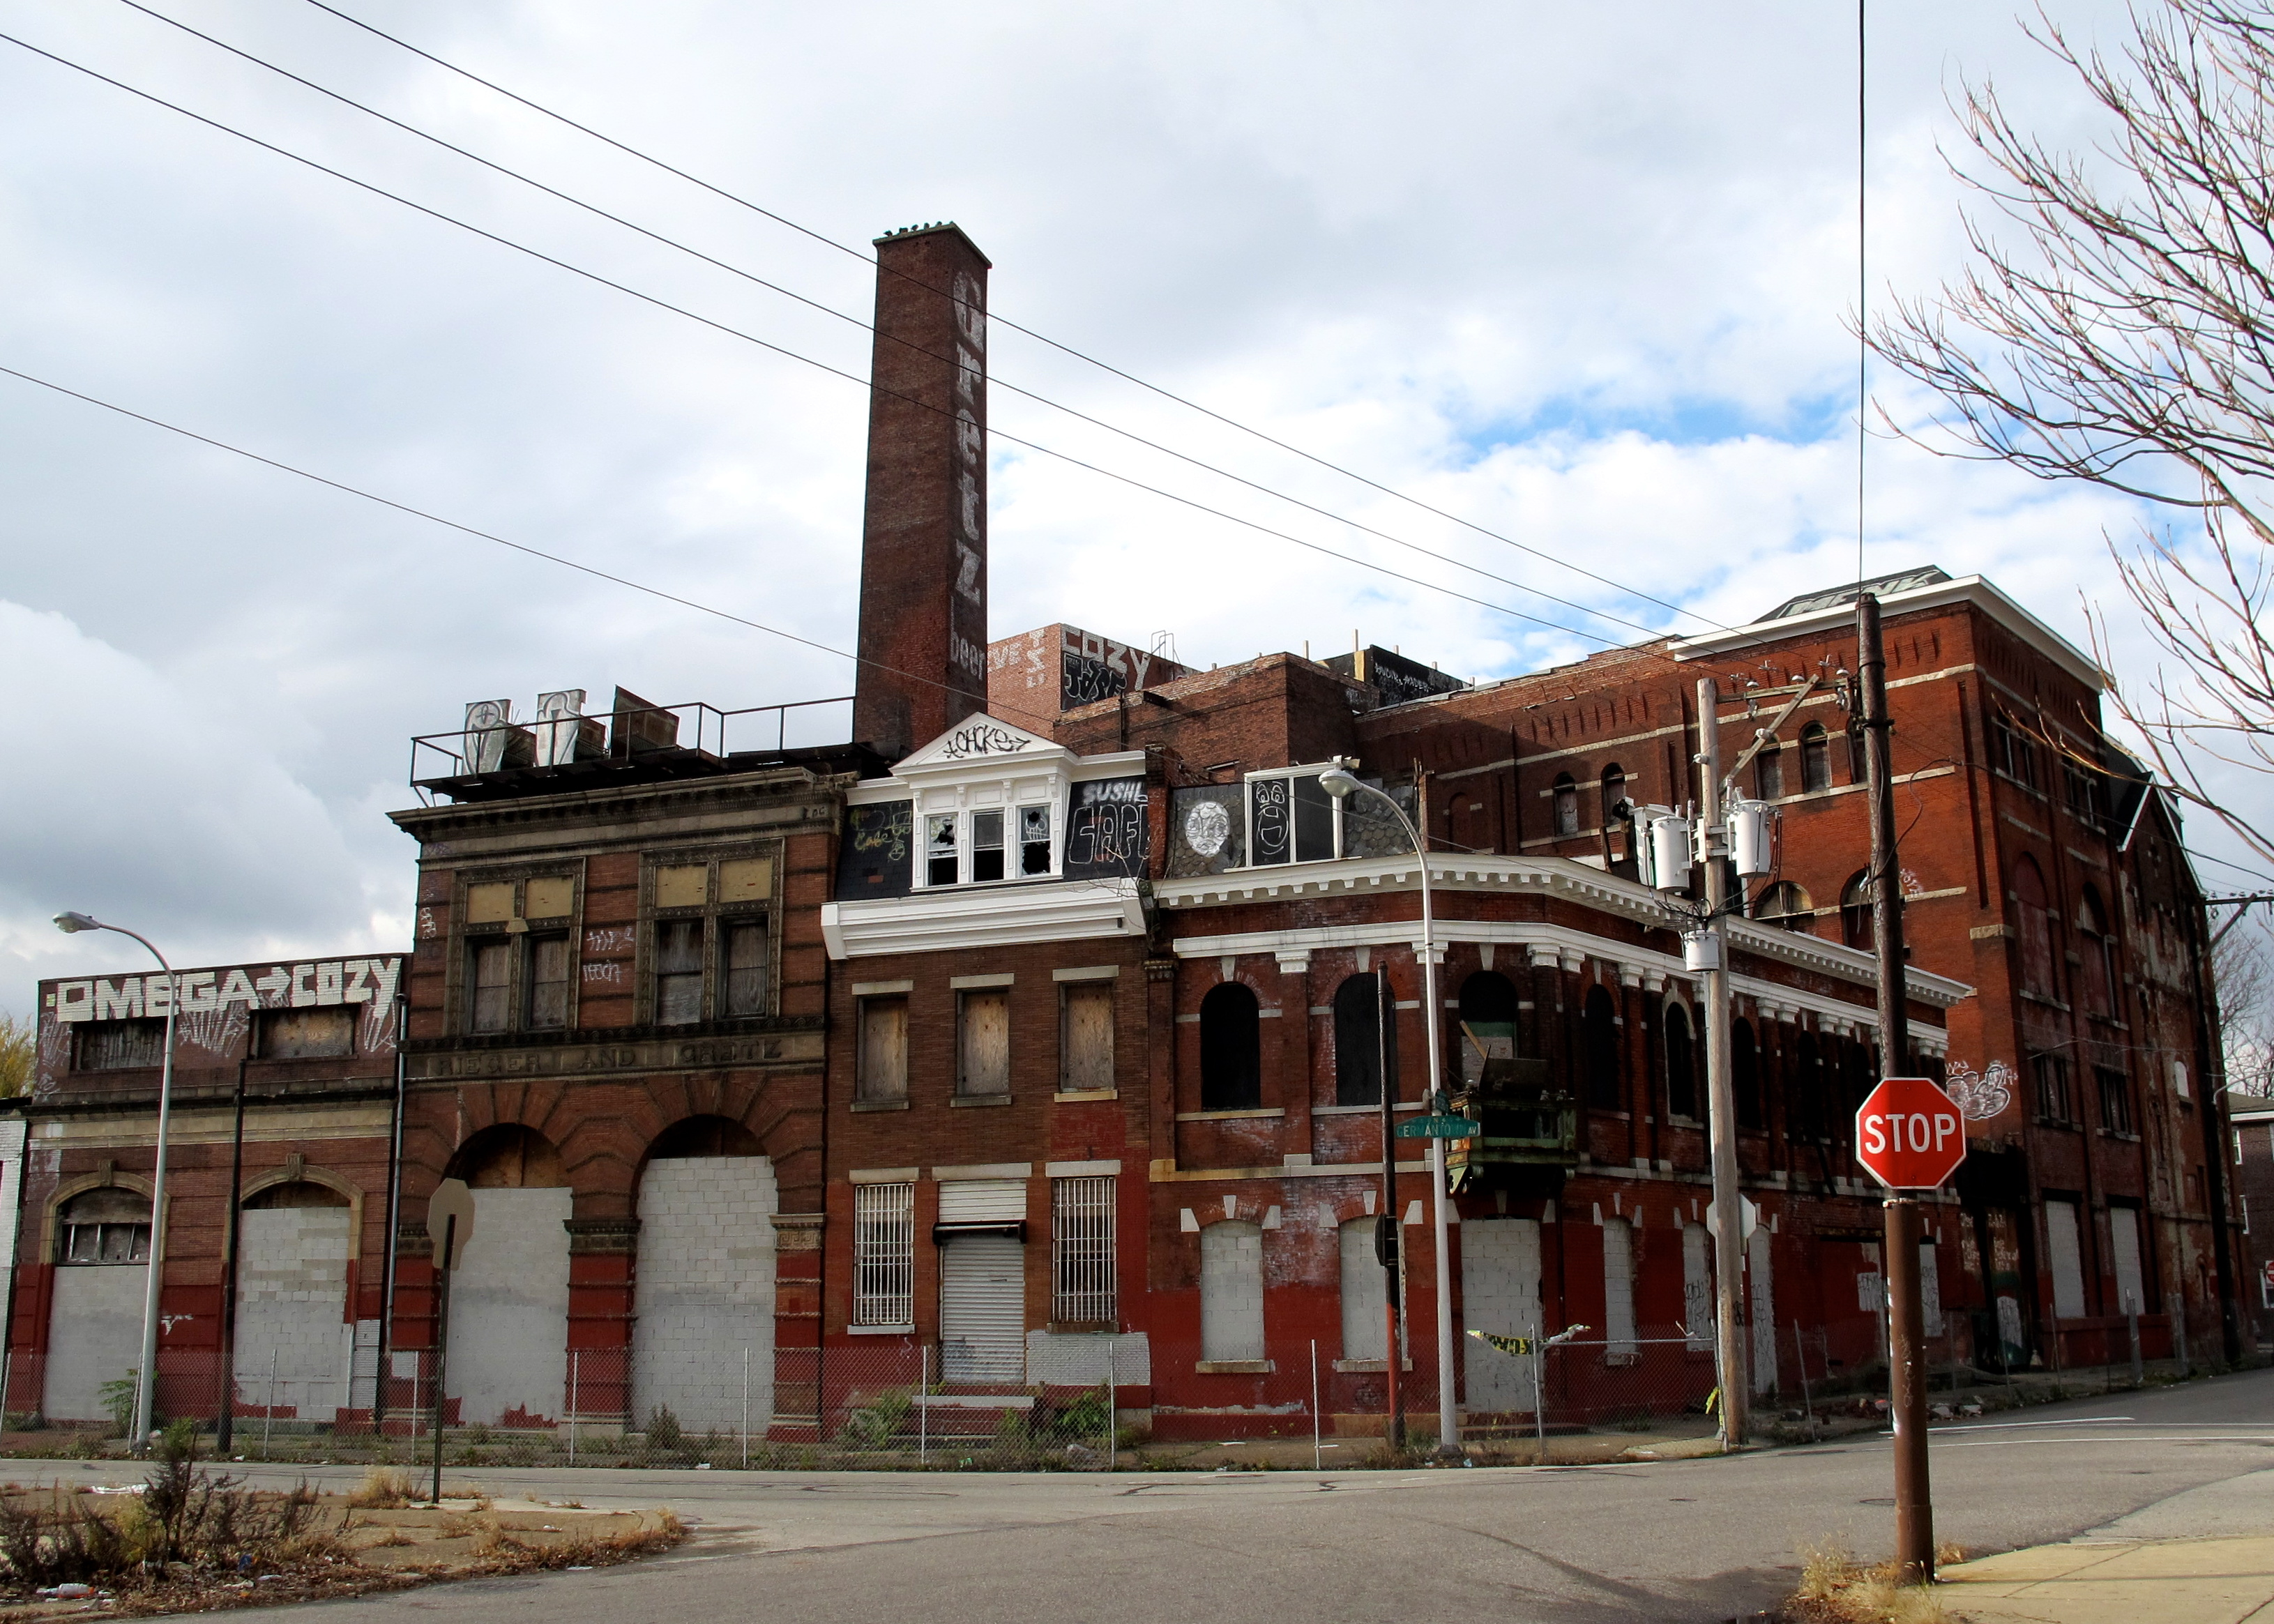 The Gretz Brewery complex in Kensington has been vacant since 1961.